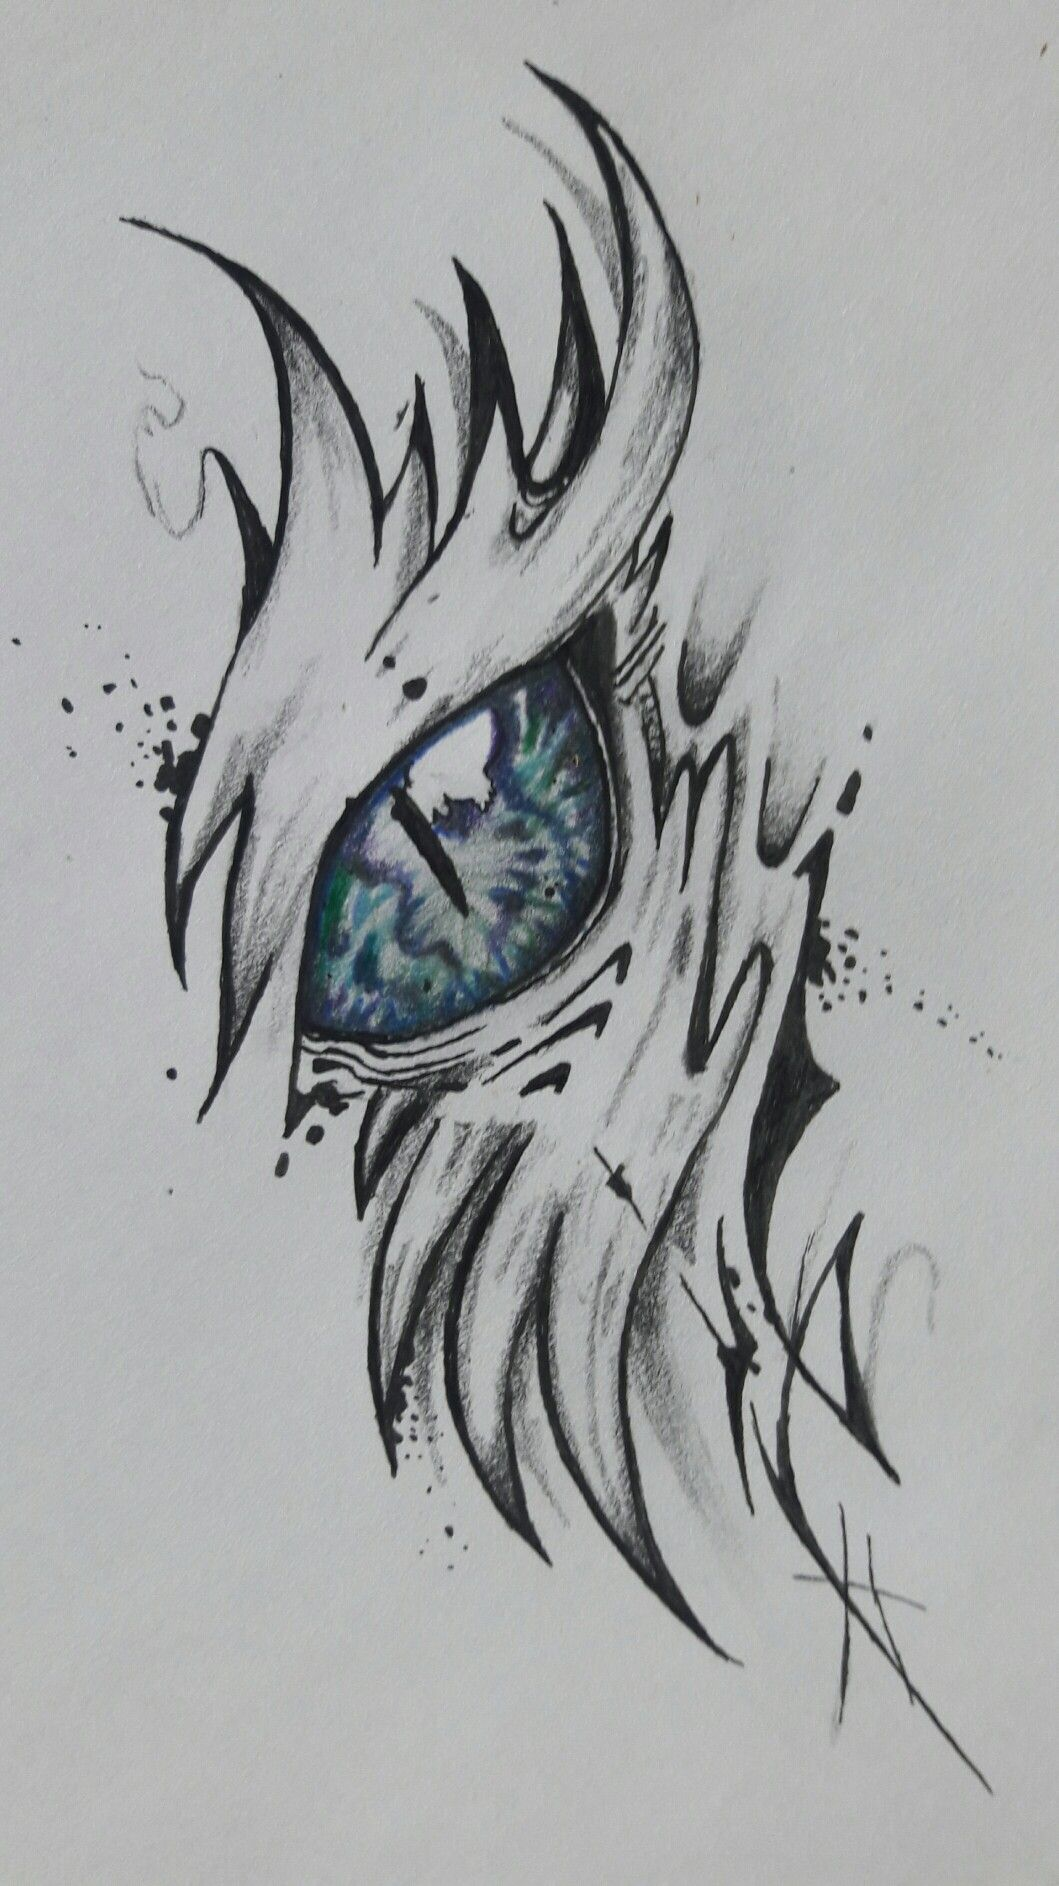 Me quedó lindo 3 Dragon eye drawing, Dragon sketch